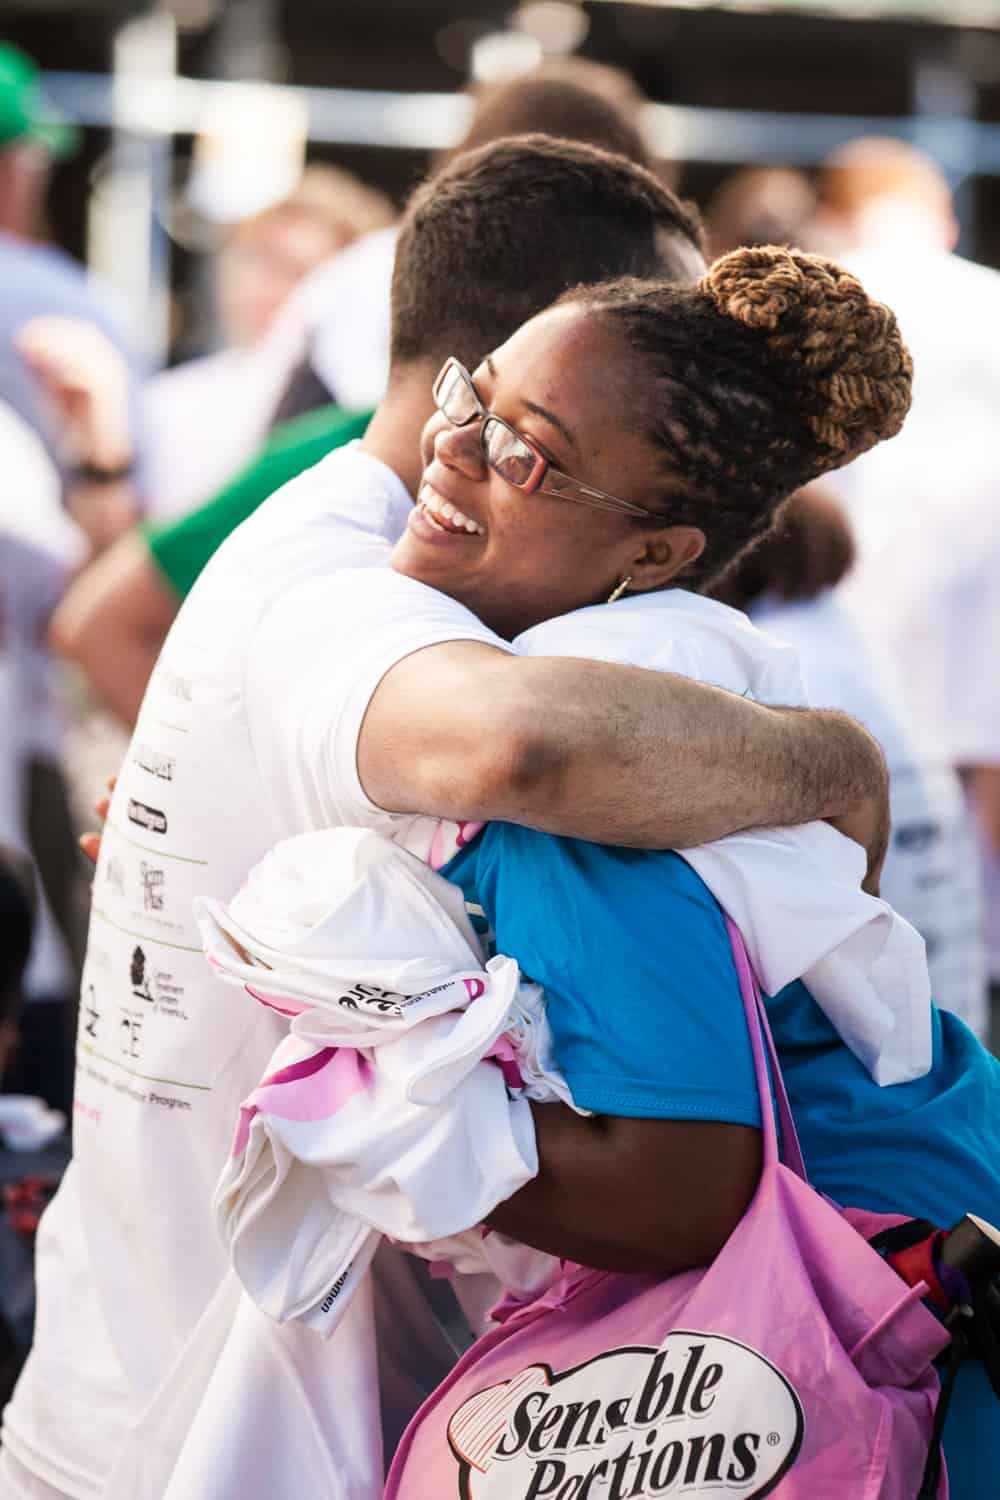 NYC Race for the Cure photos of African American woman hugging man